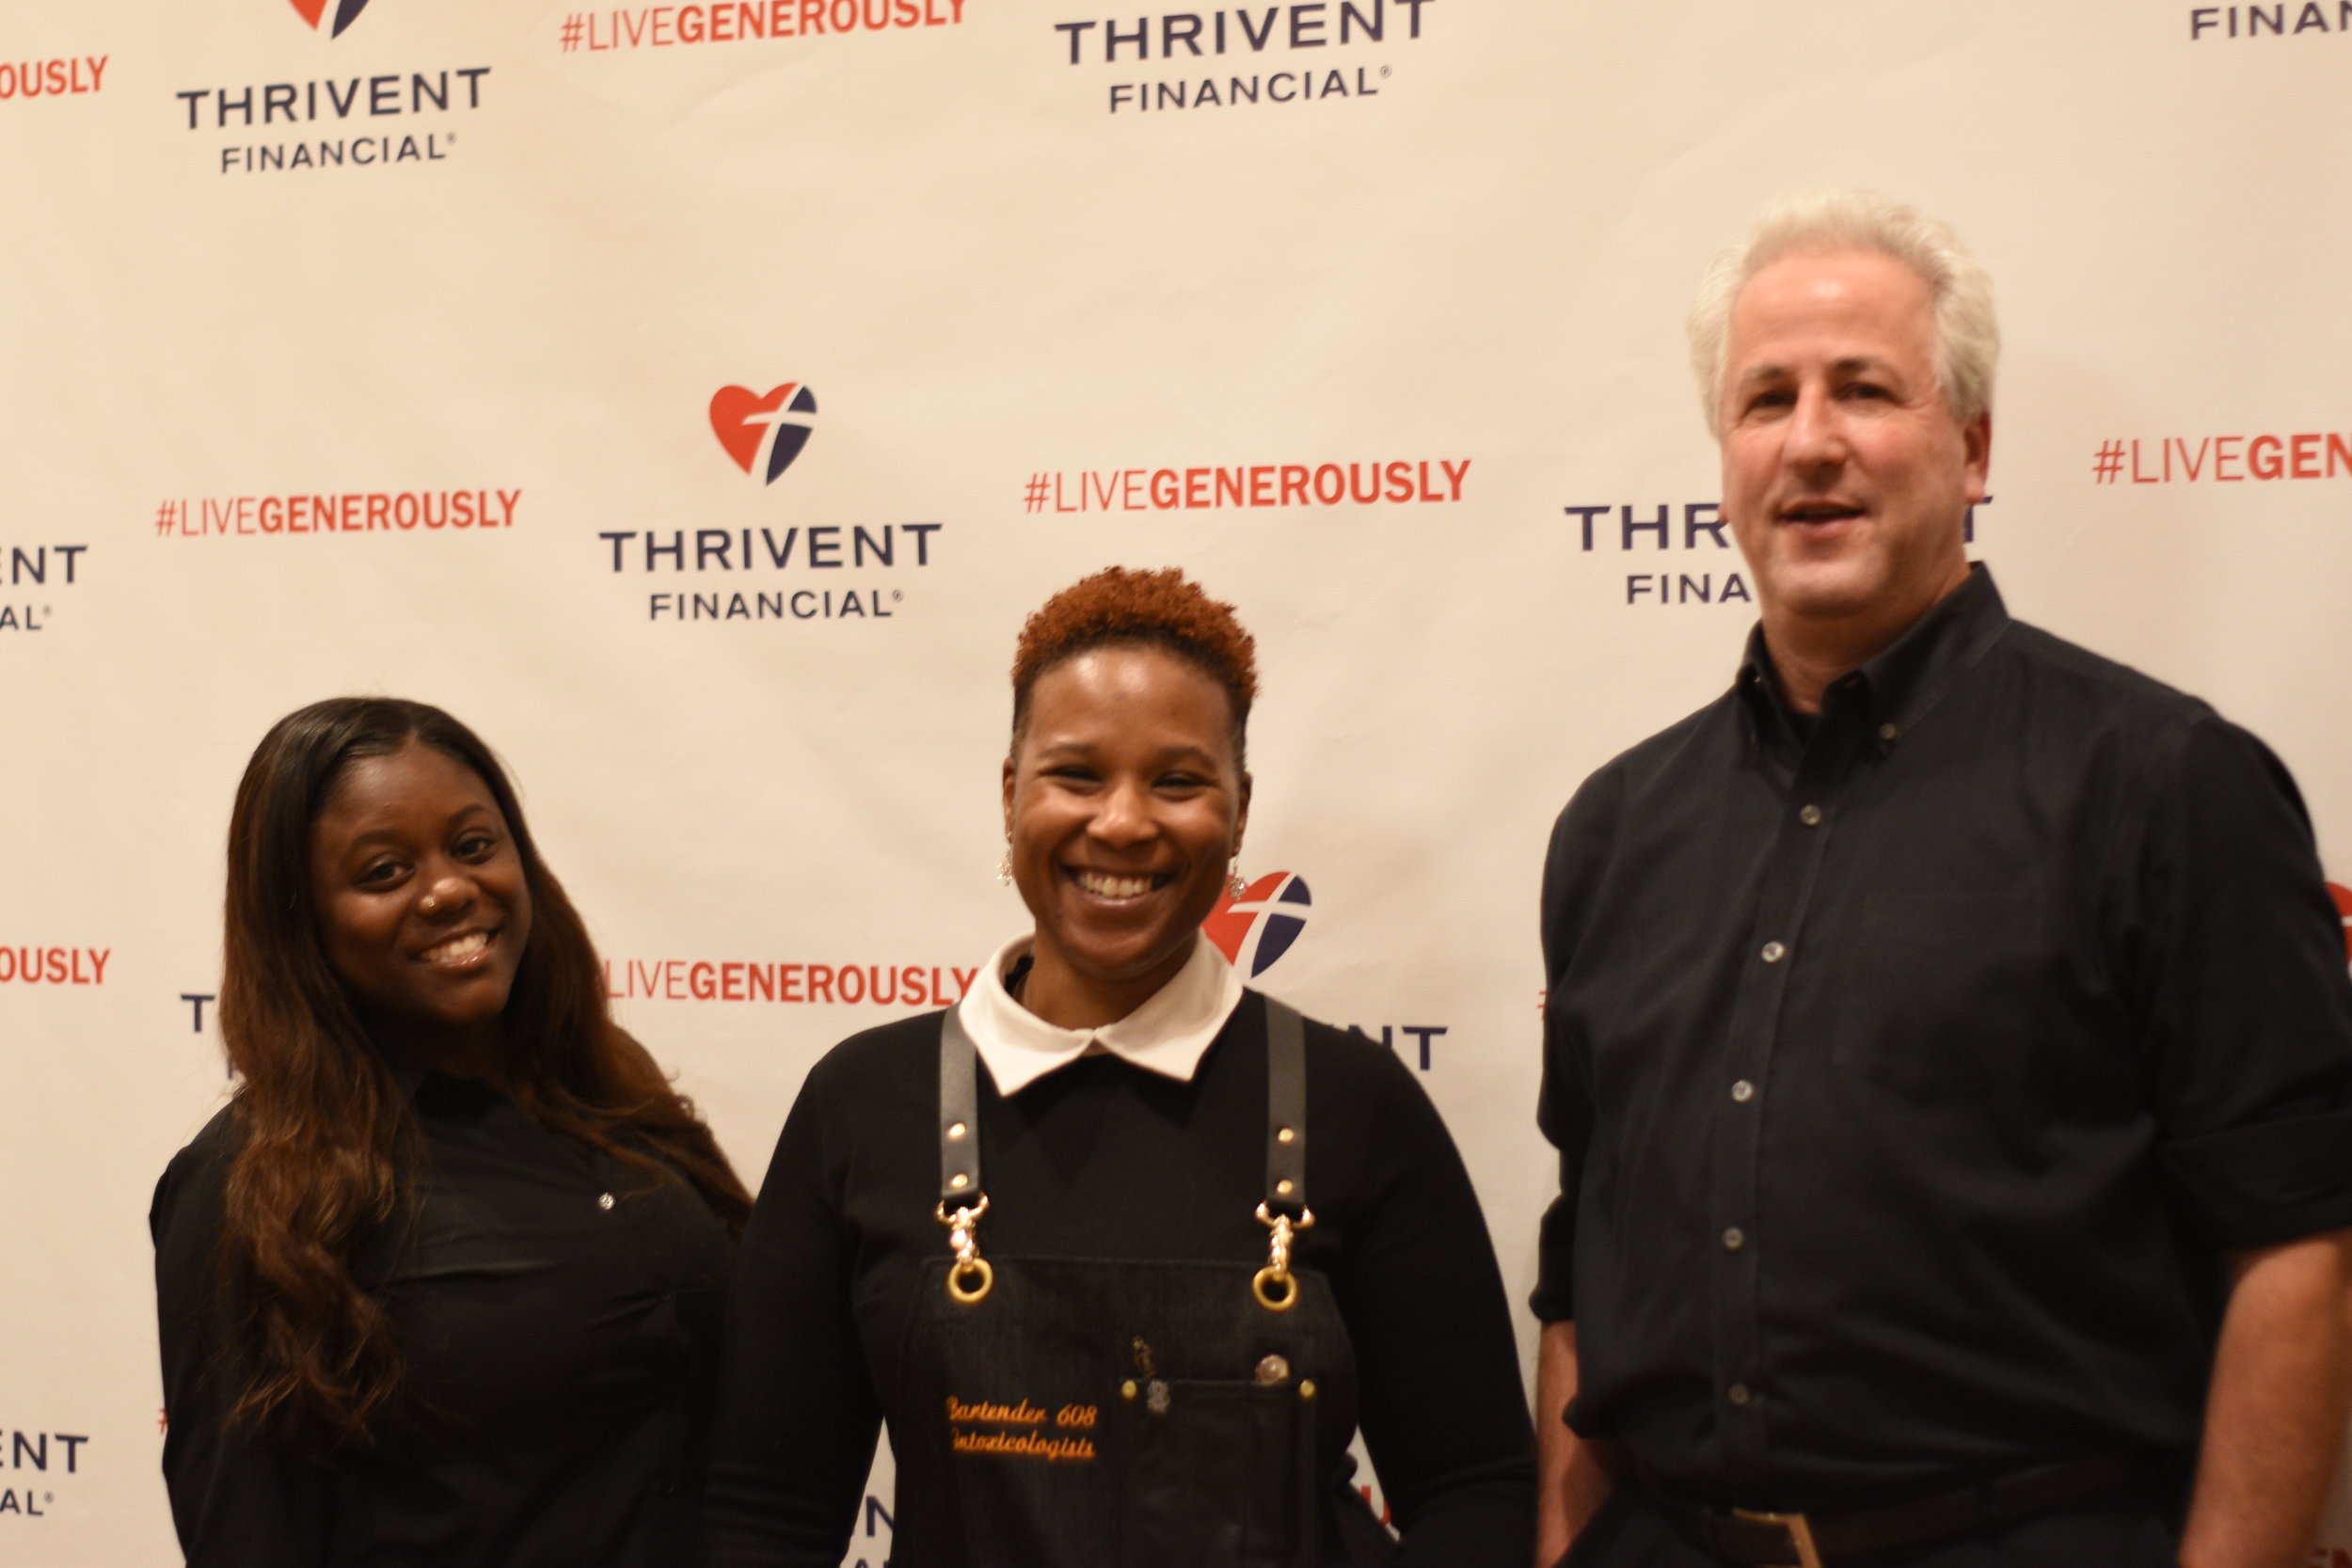 thrivent financial event - mt. horeb, wi